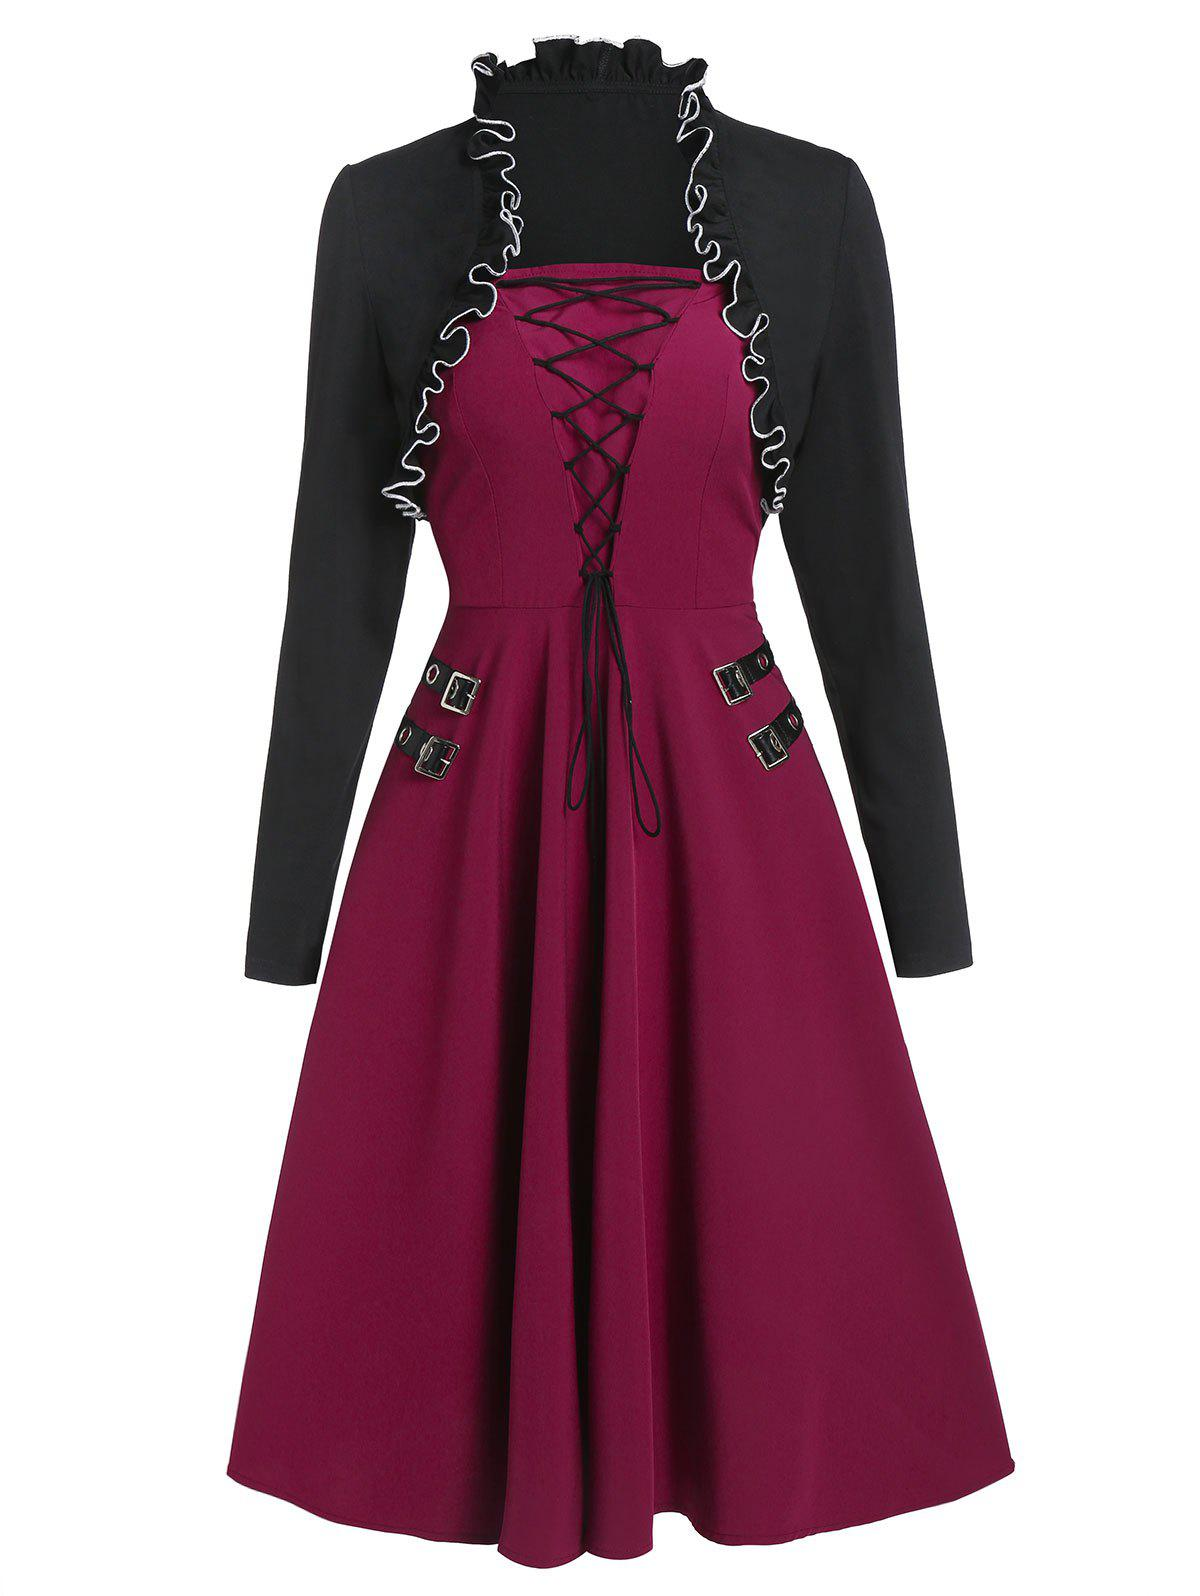 Chic Lace Up Buckle Vintage Dress with Shrug Top